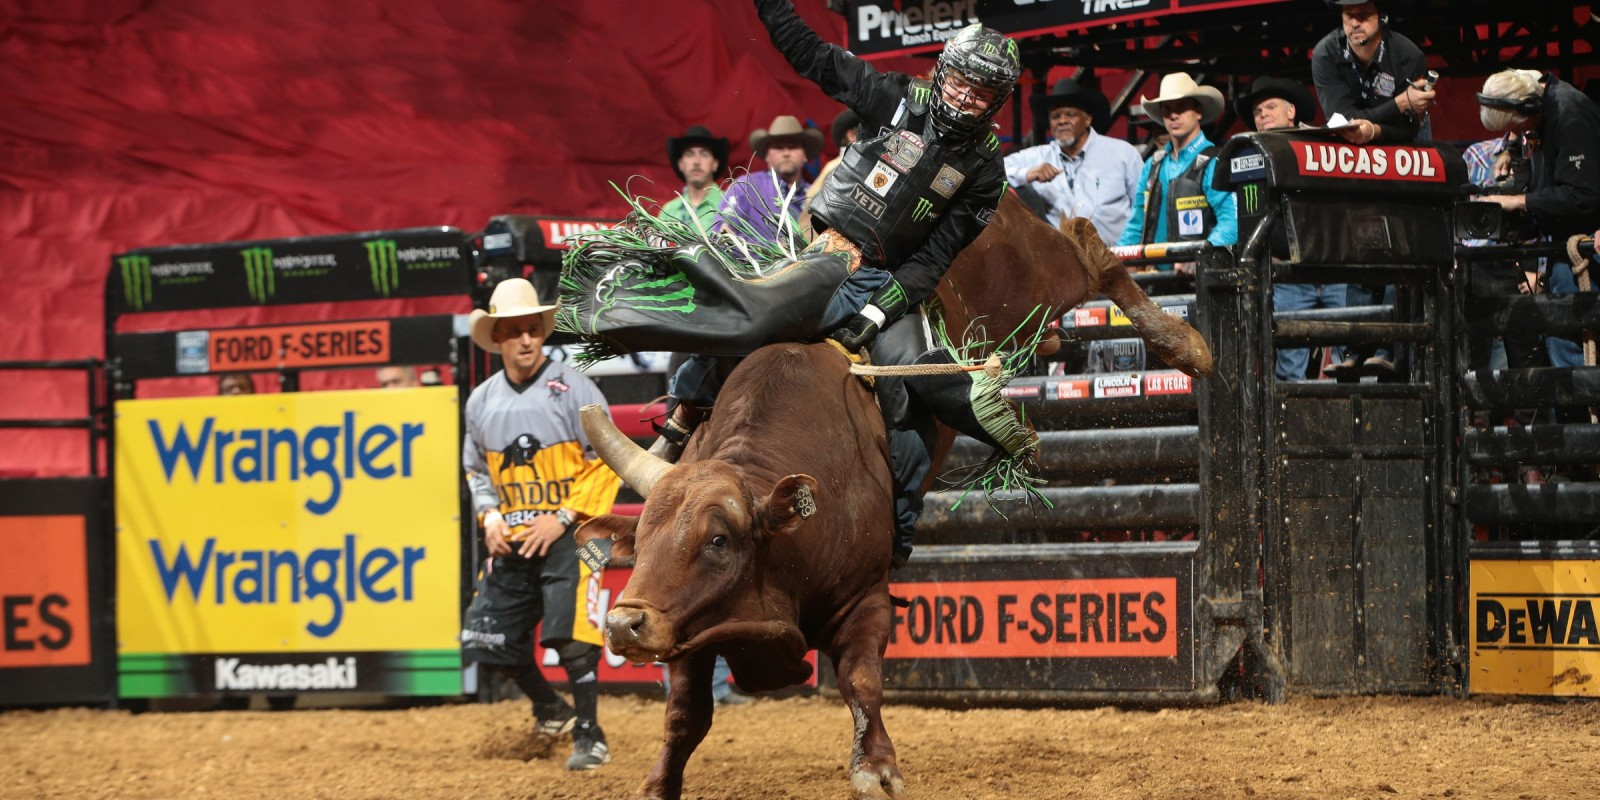 Derek Kolbaba attempts to ride Rocking I Rodeo Co's Billy Bat Skat during the third round of the St. Louis Built Ford Tough series PBR. Photo by Andy Watson